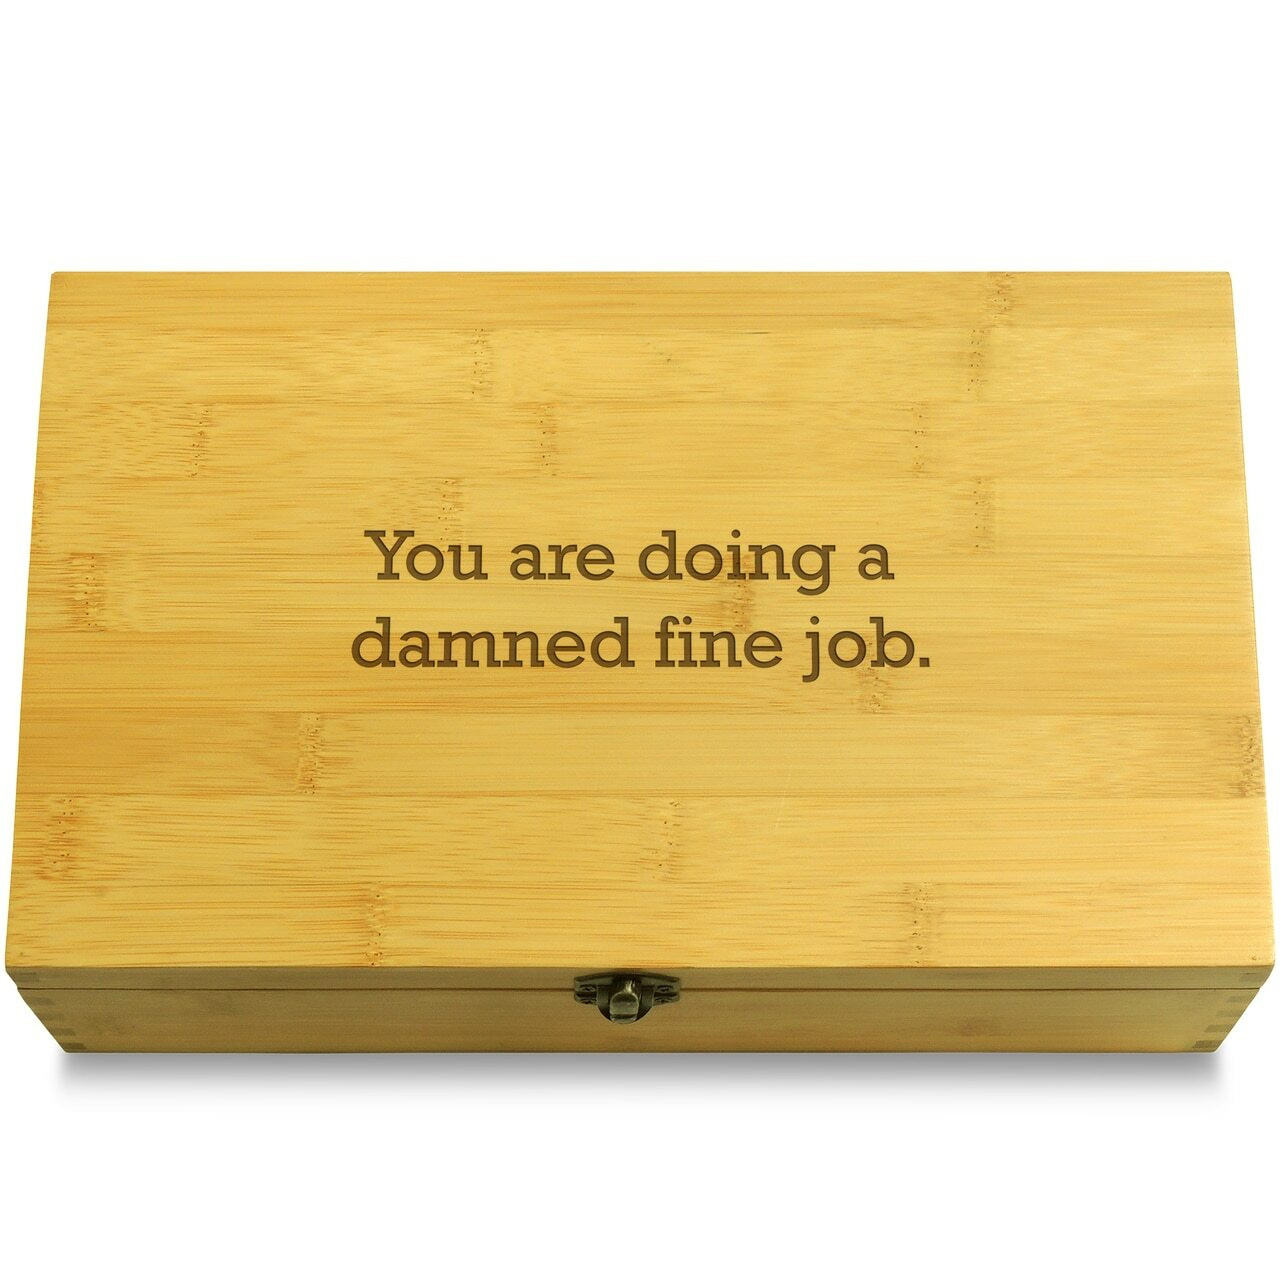 You Are Doing A Damned Fine Job Decorative Bamboo Wood Multikeep Box Bamboo Organizer